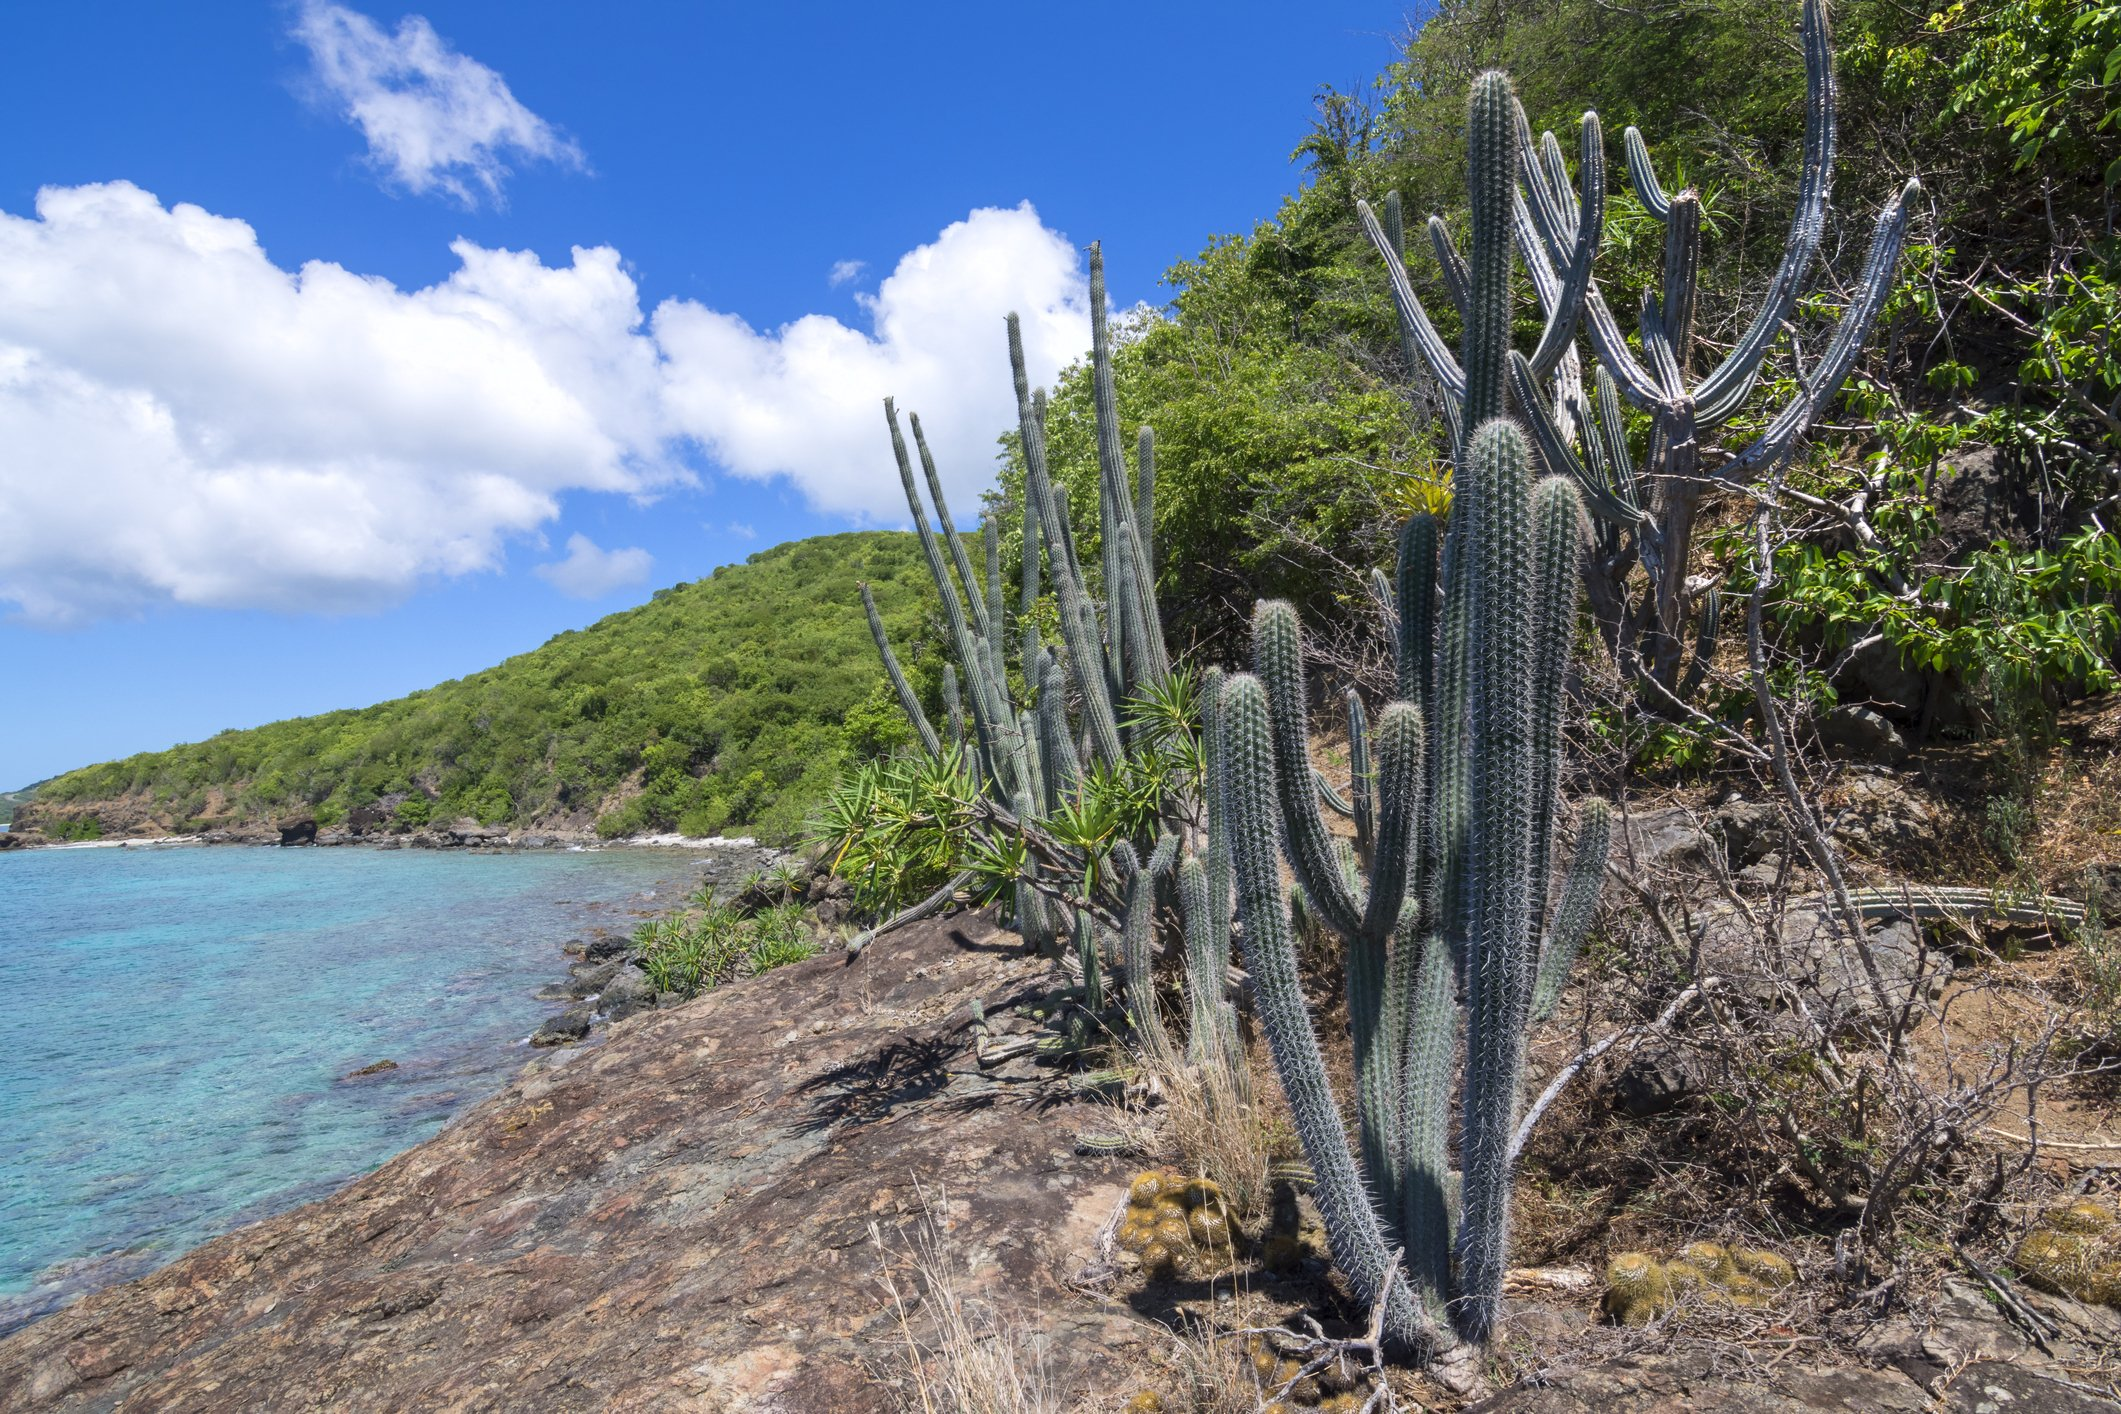 Naturally occurring variety of endemic cactus and other plants